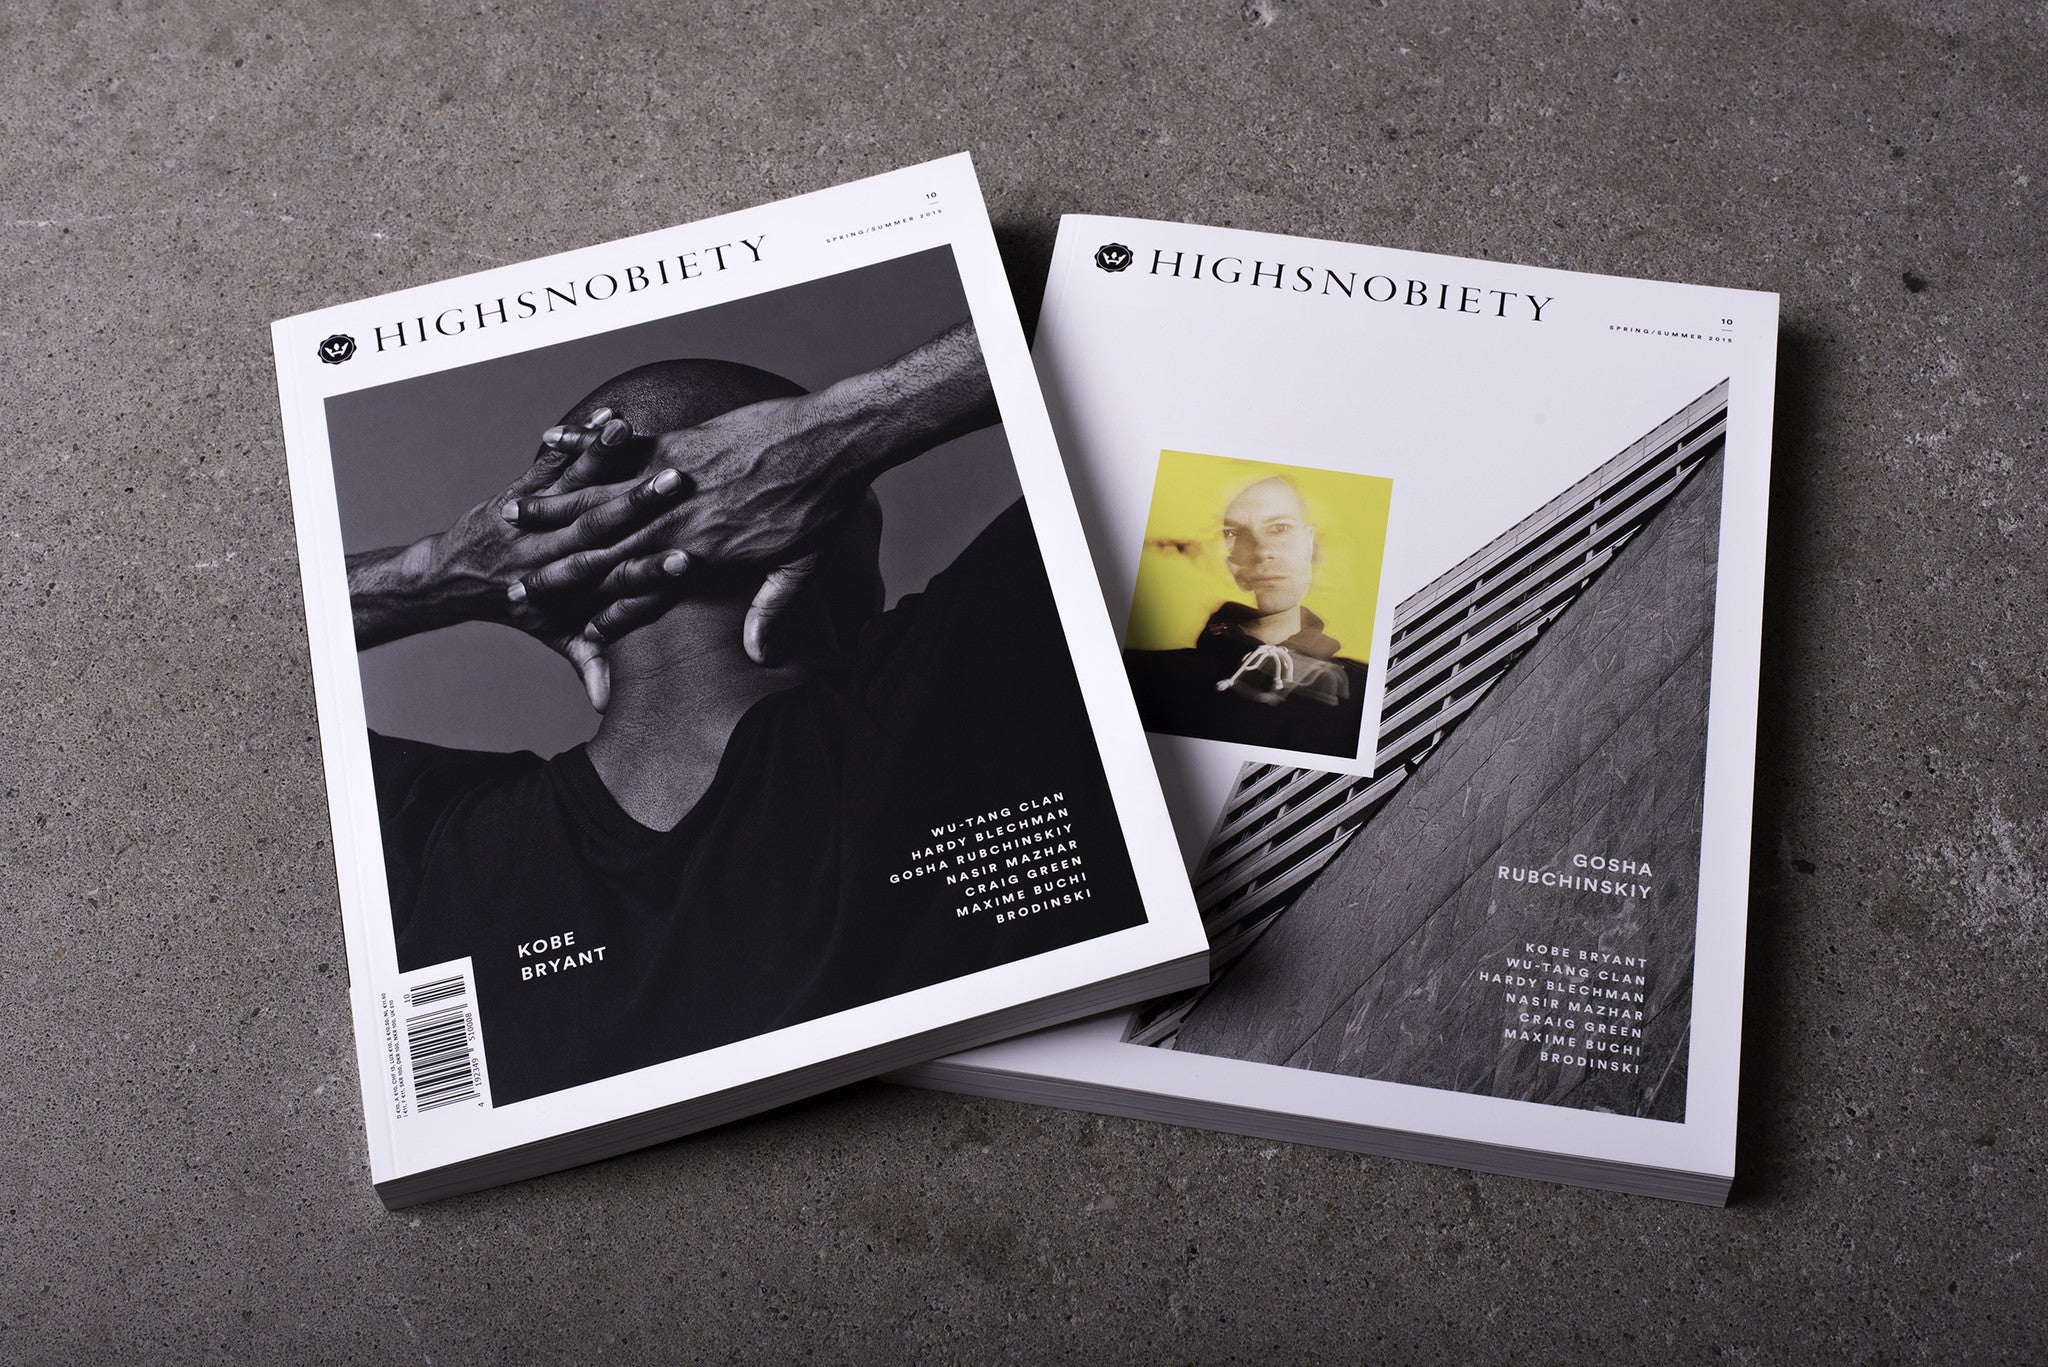 Highsnobiety Magazine Issue 10 - Kobe Bryant